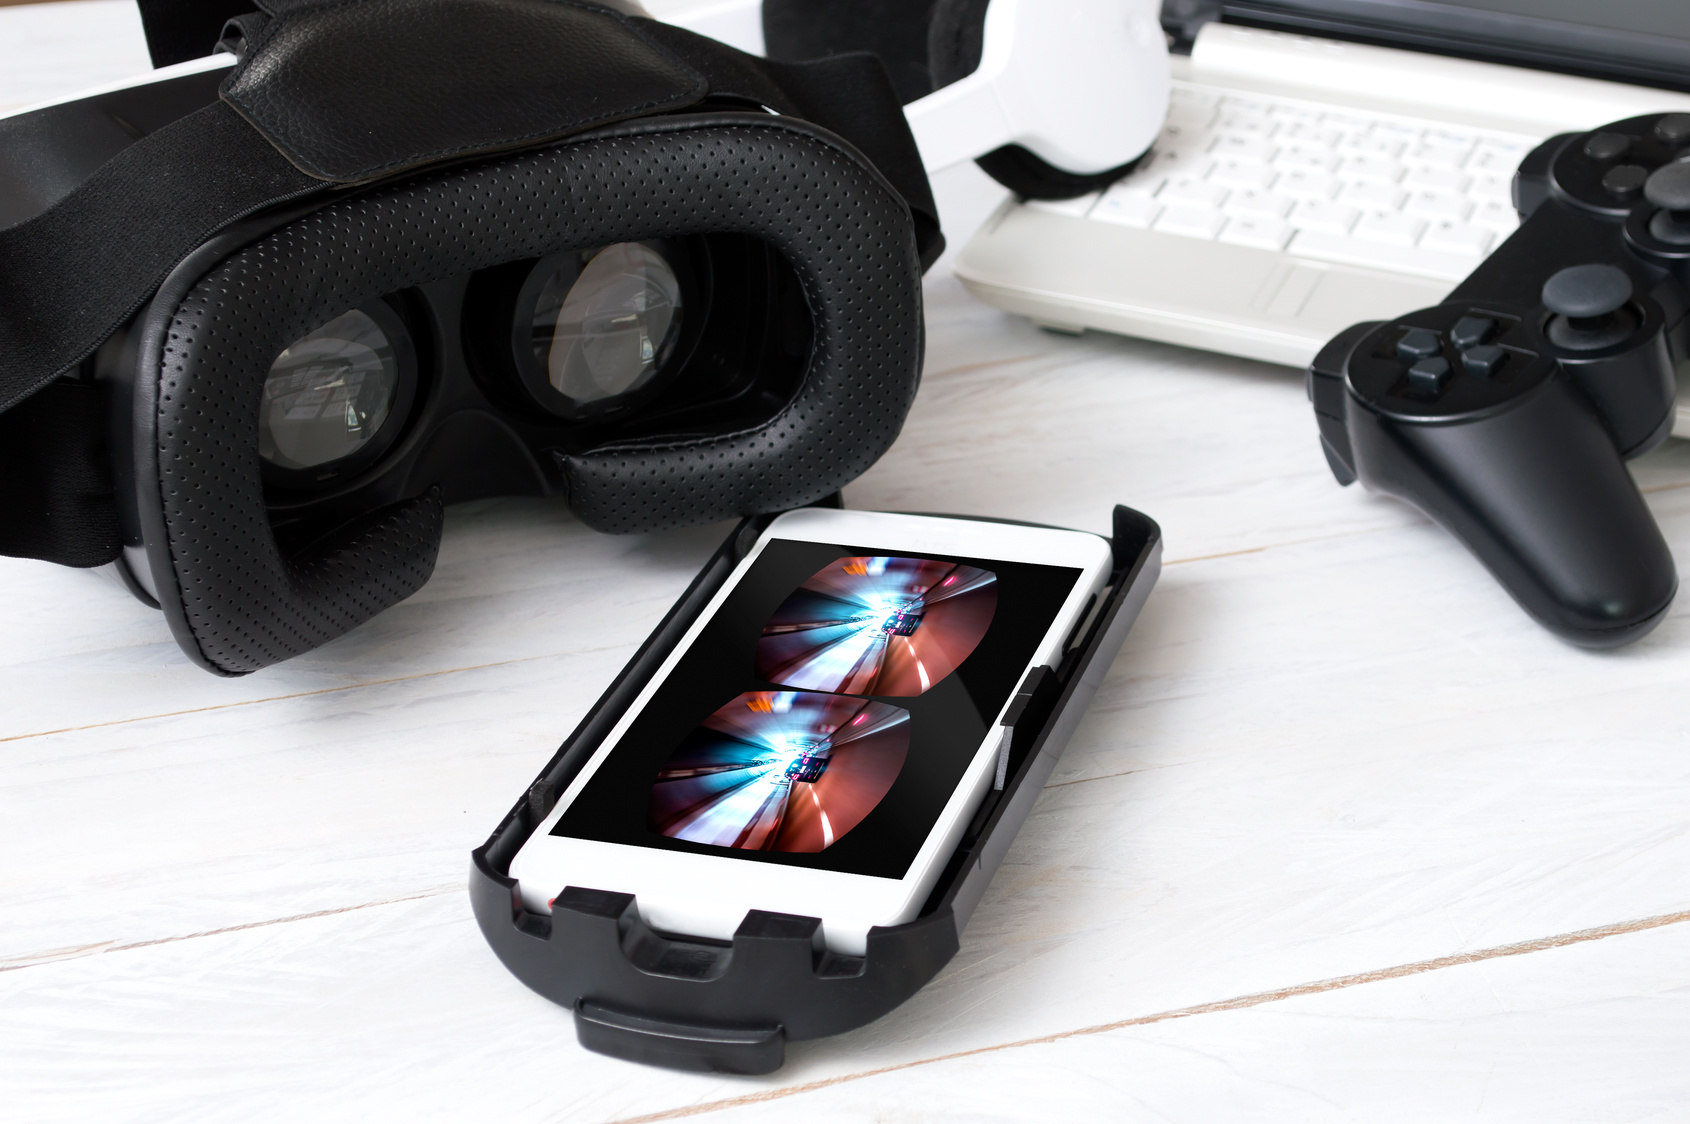 Smartphone laying on desk and prepared to play with VR googles. Game on screen was created in graphic program